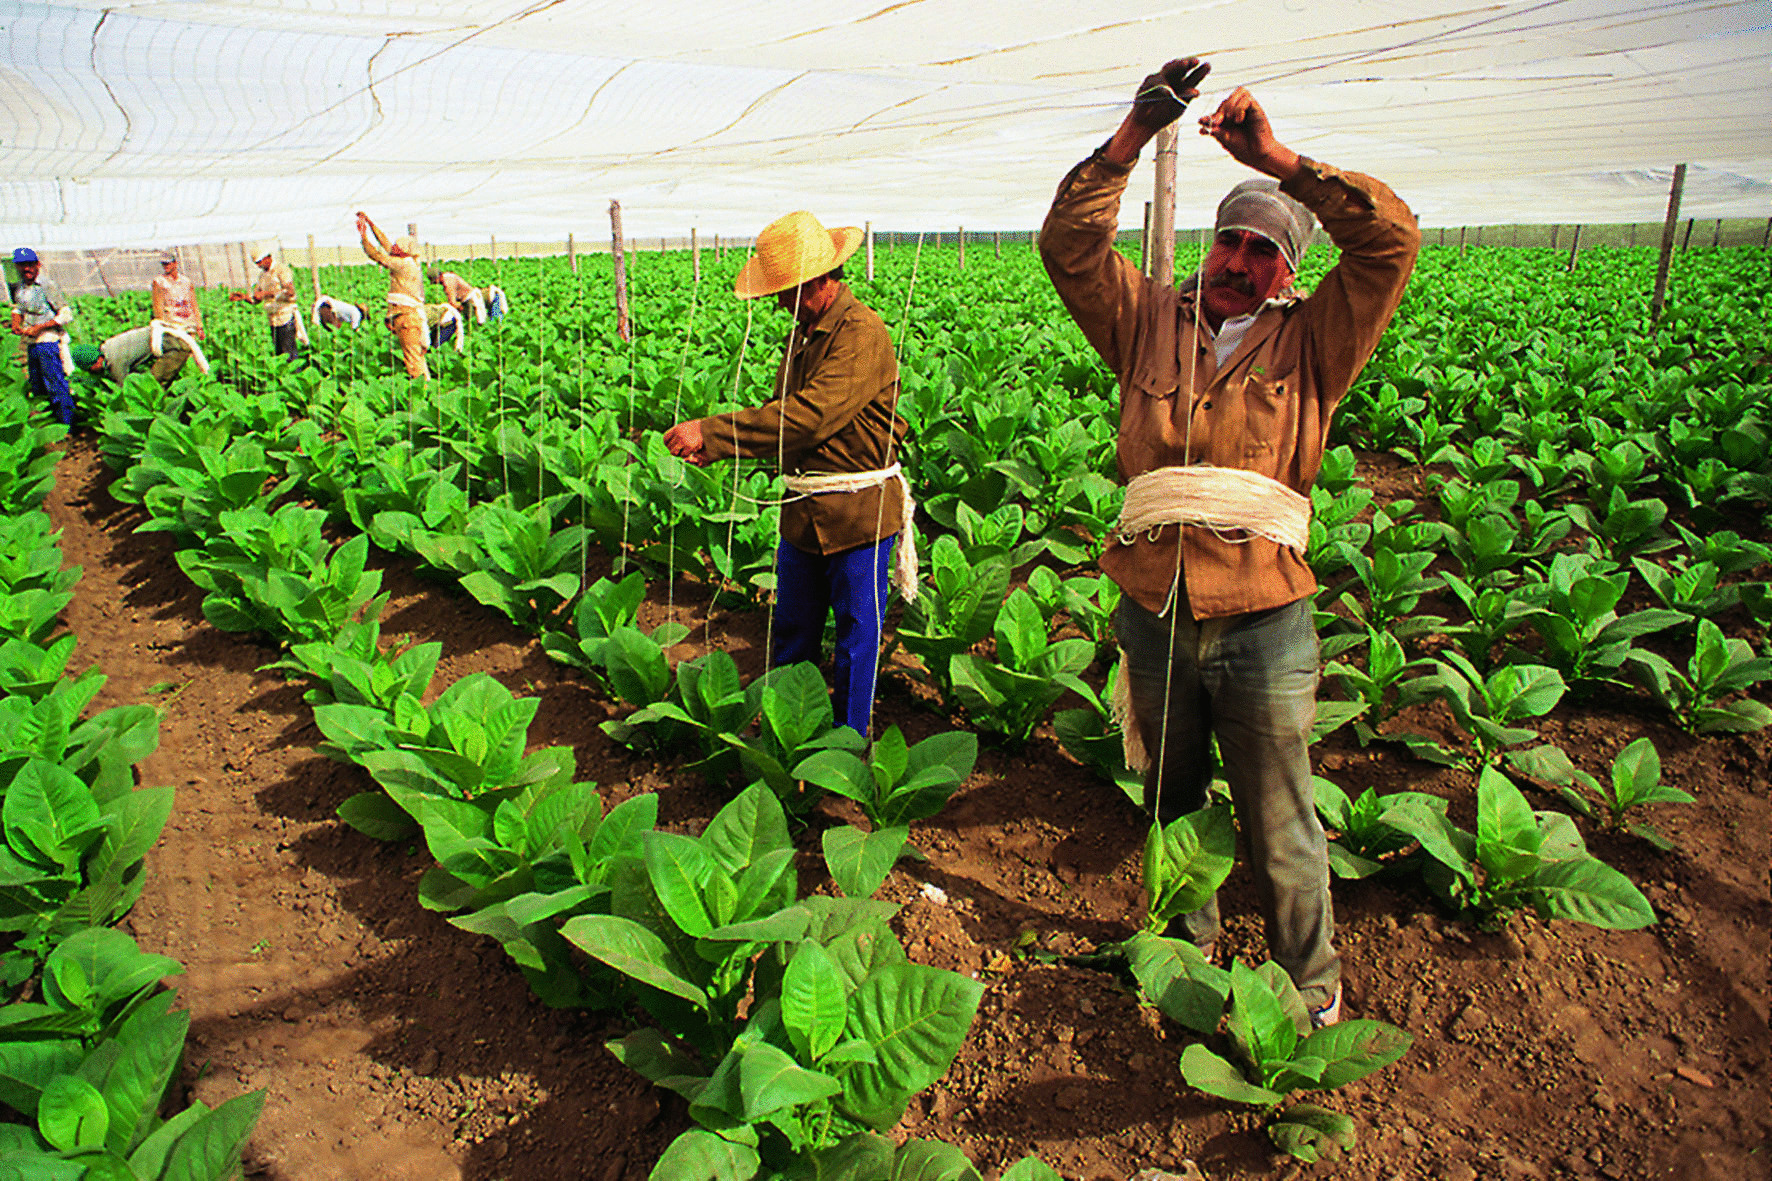 tying the tobacco plants